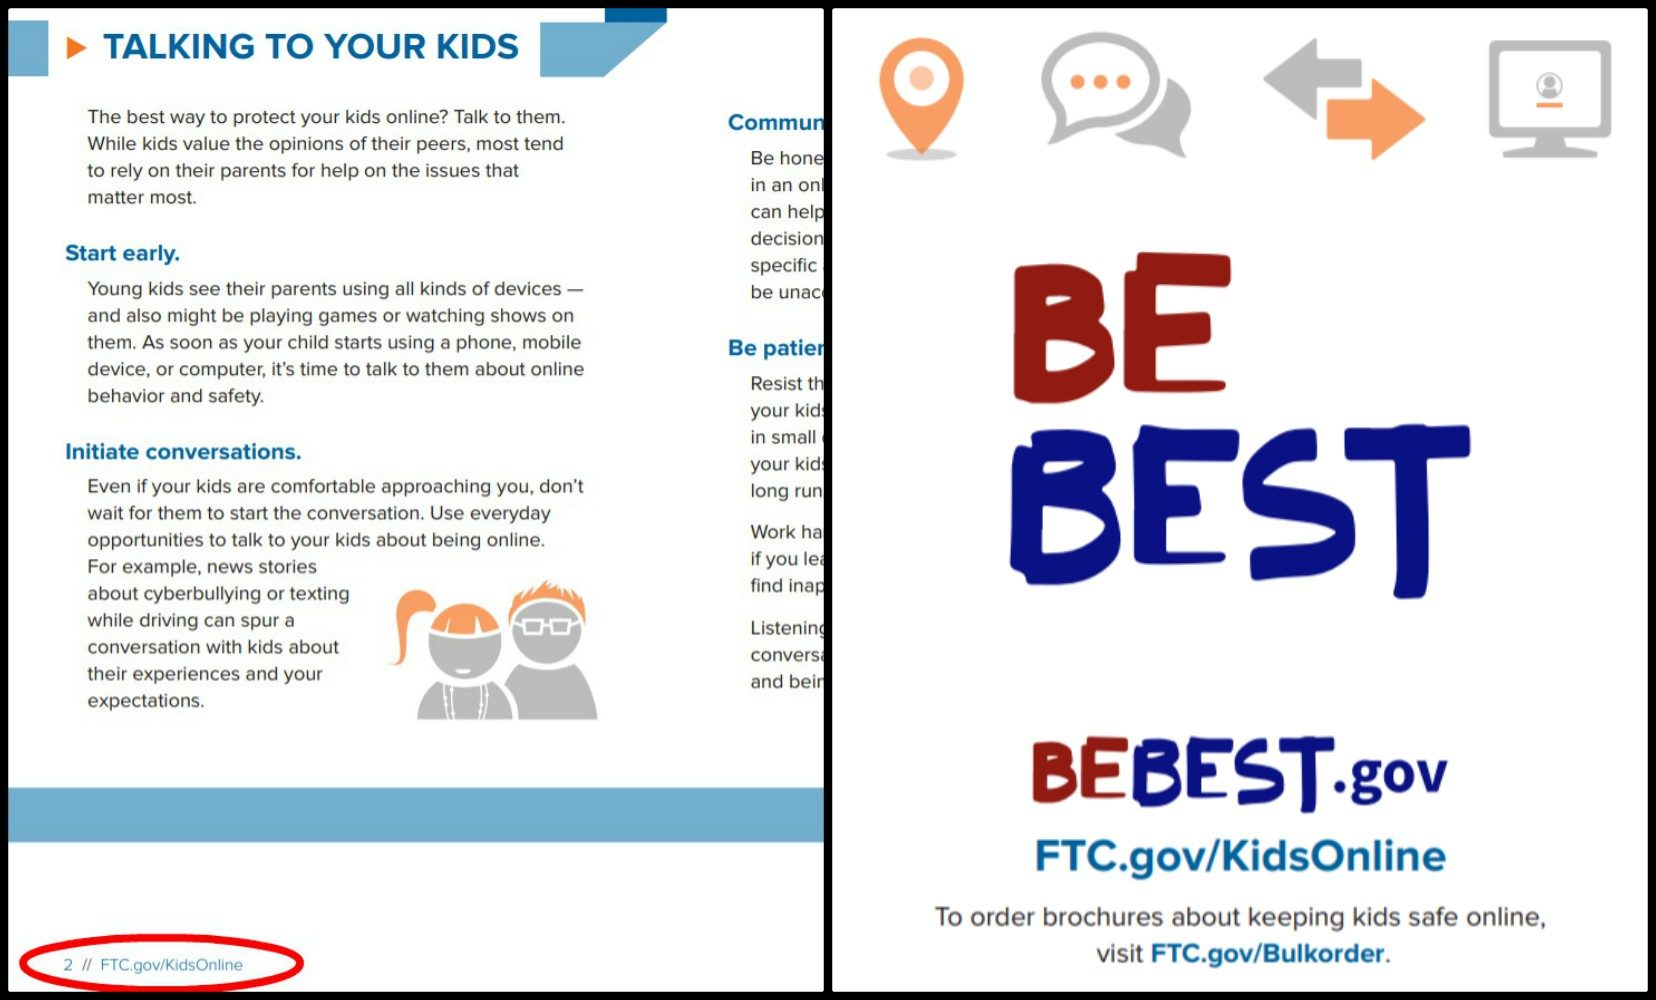 A Link To The FTCs Web Site About Internet Safety And Final Page Lists Sites For Both Be Best Campaign